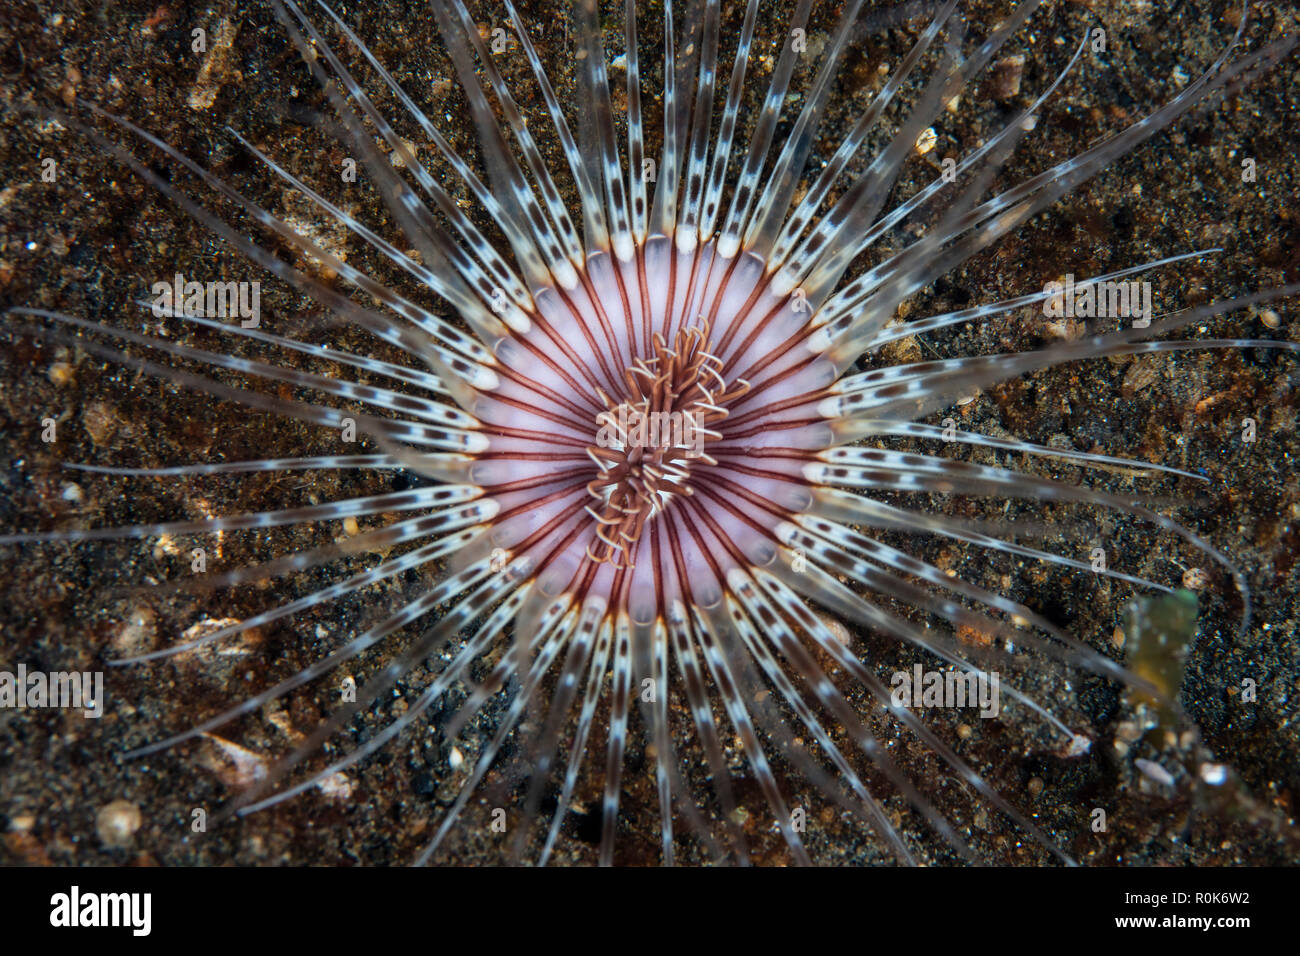 A colorful Cerianthid tube-dwelling anemone spreads its tentacles. - Stock Image